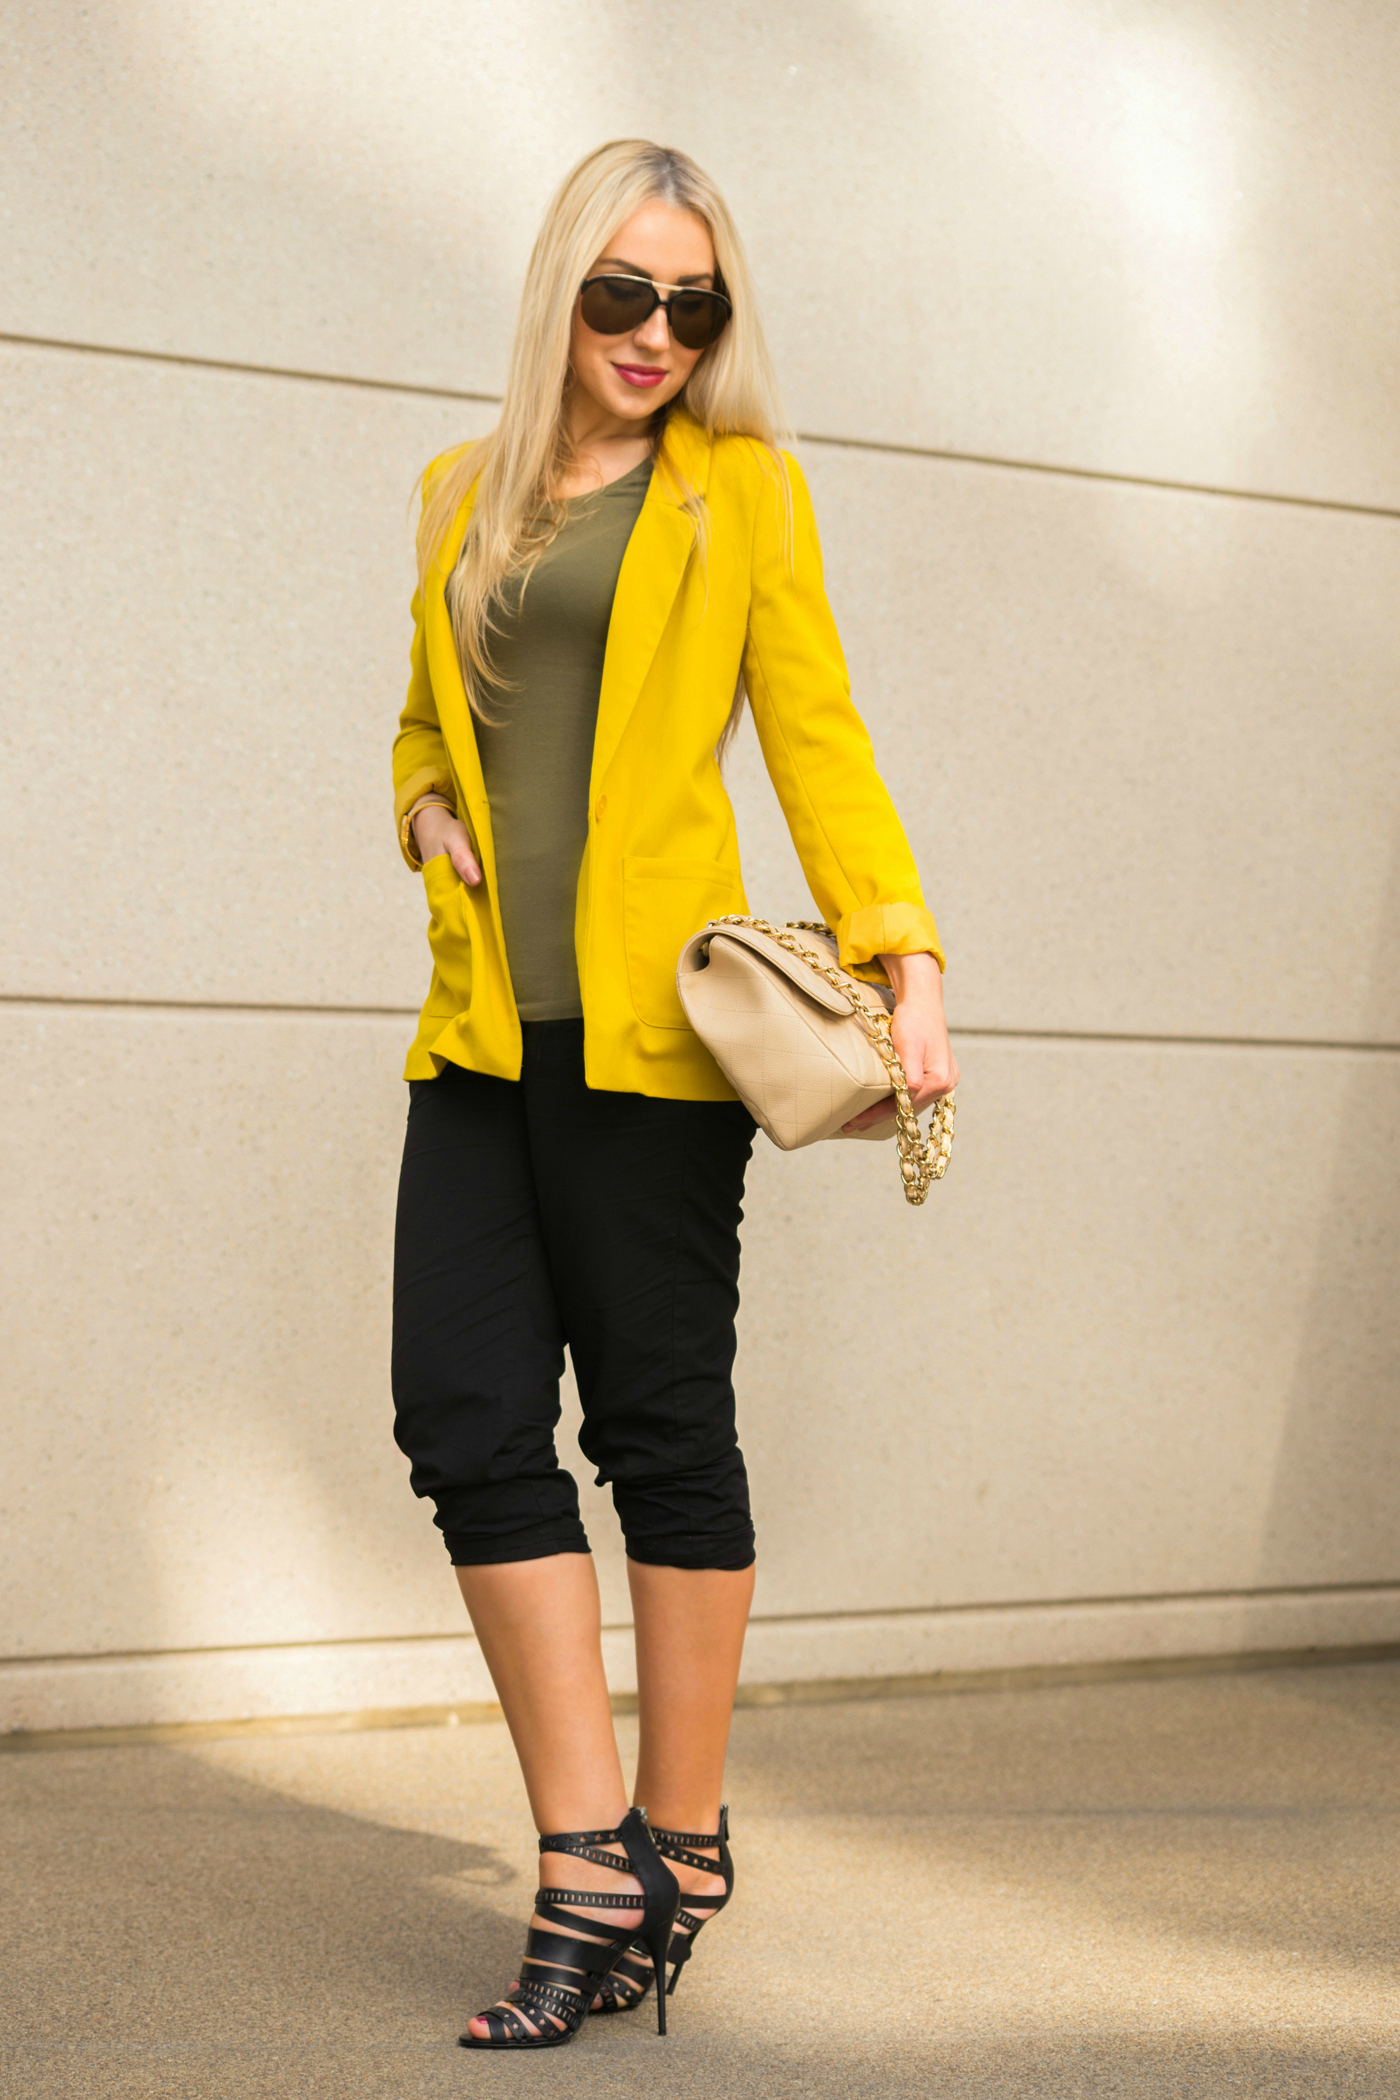 balmain sandals,vince cropped pants,H&M top,asos blazer,chanel jumbo